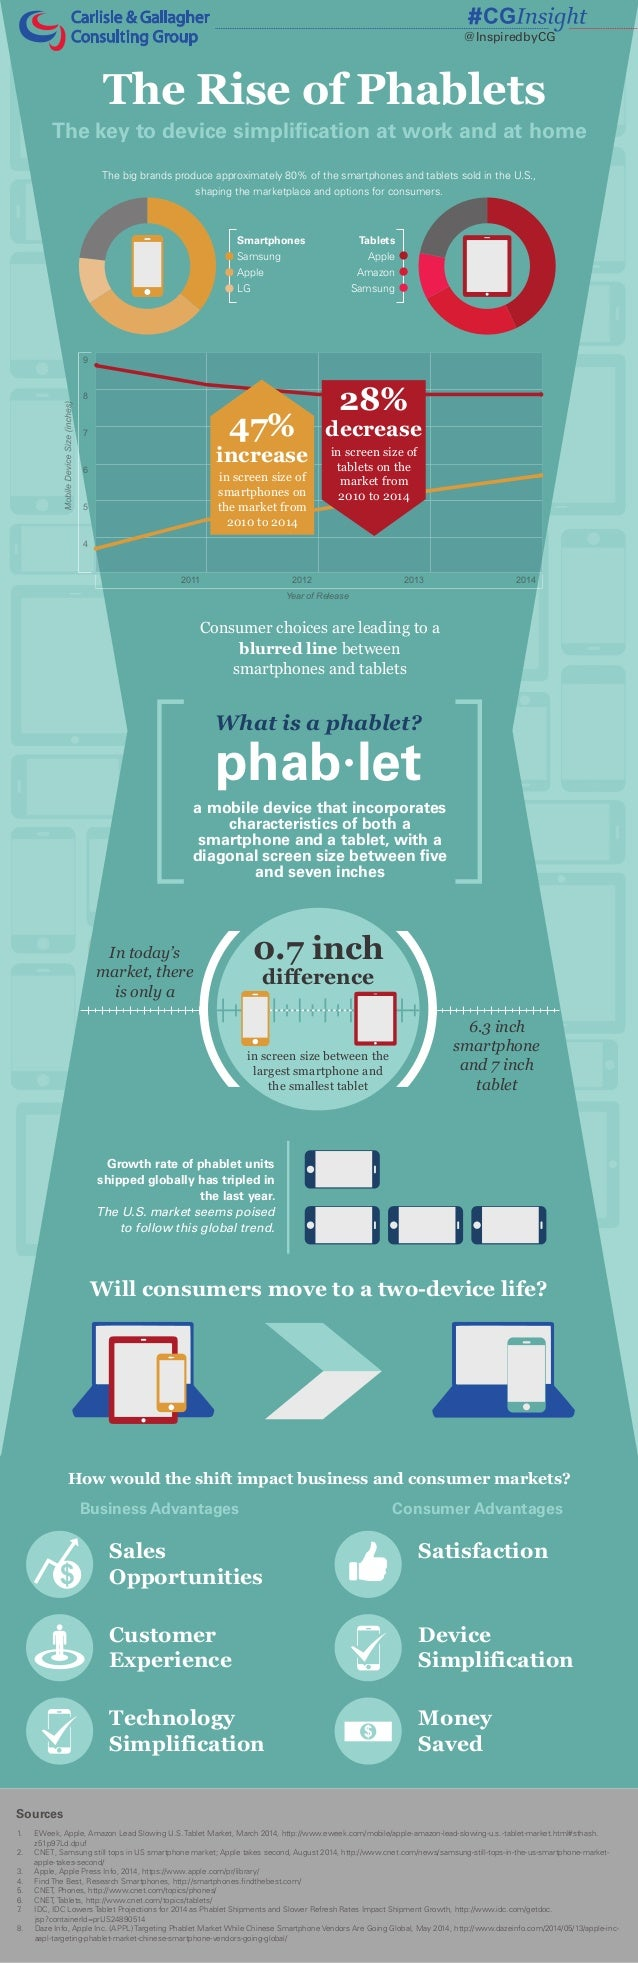 The Rise of Phablets